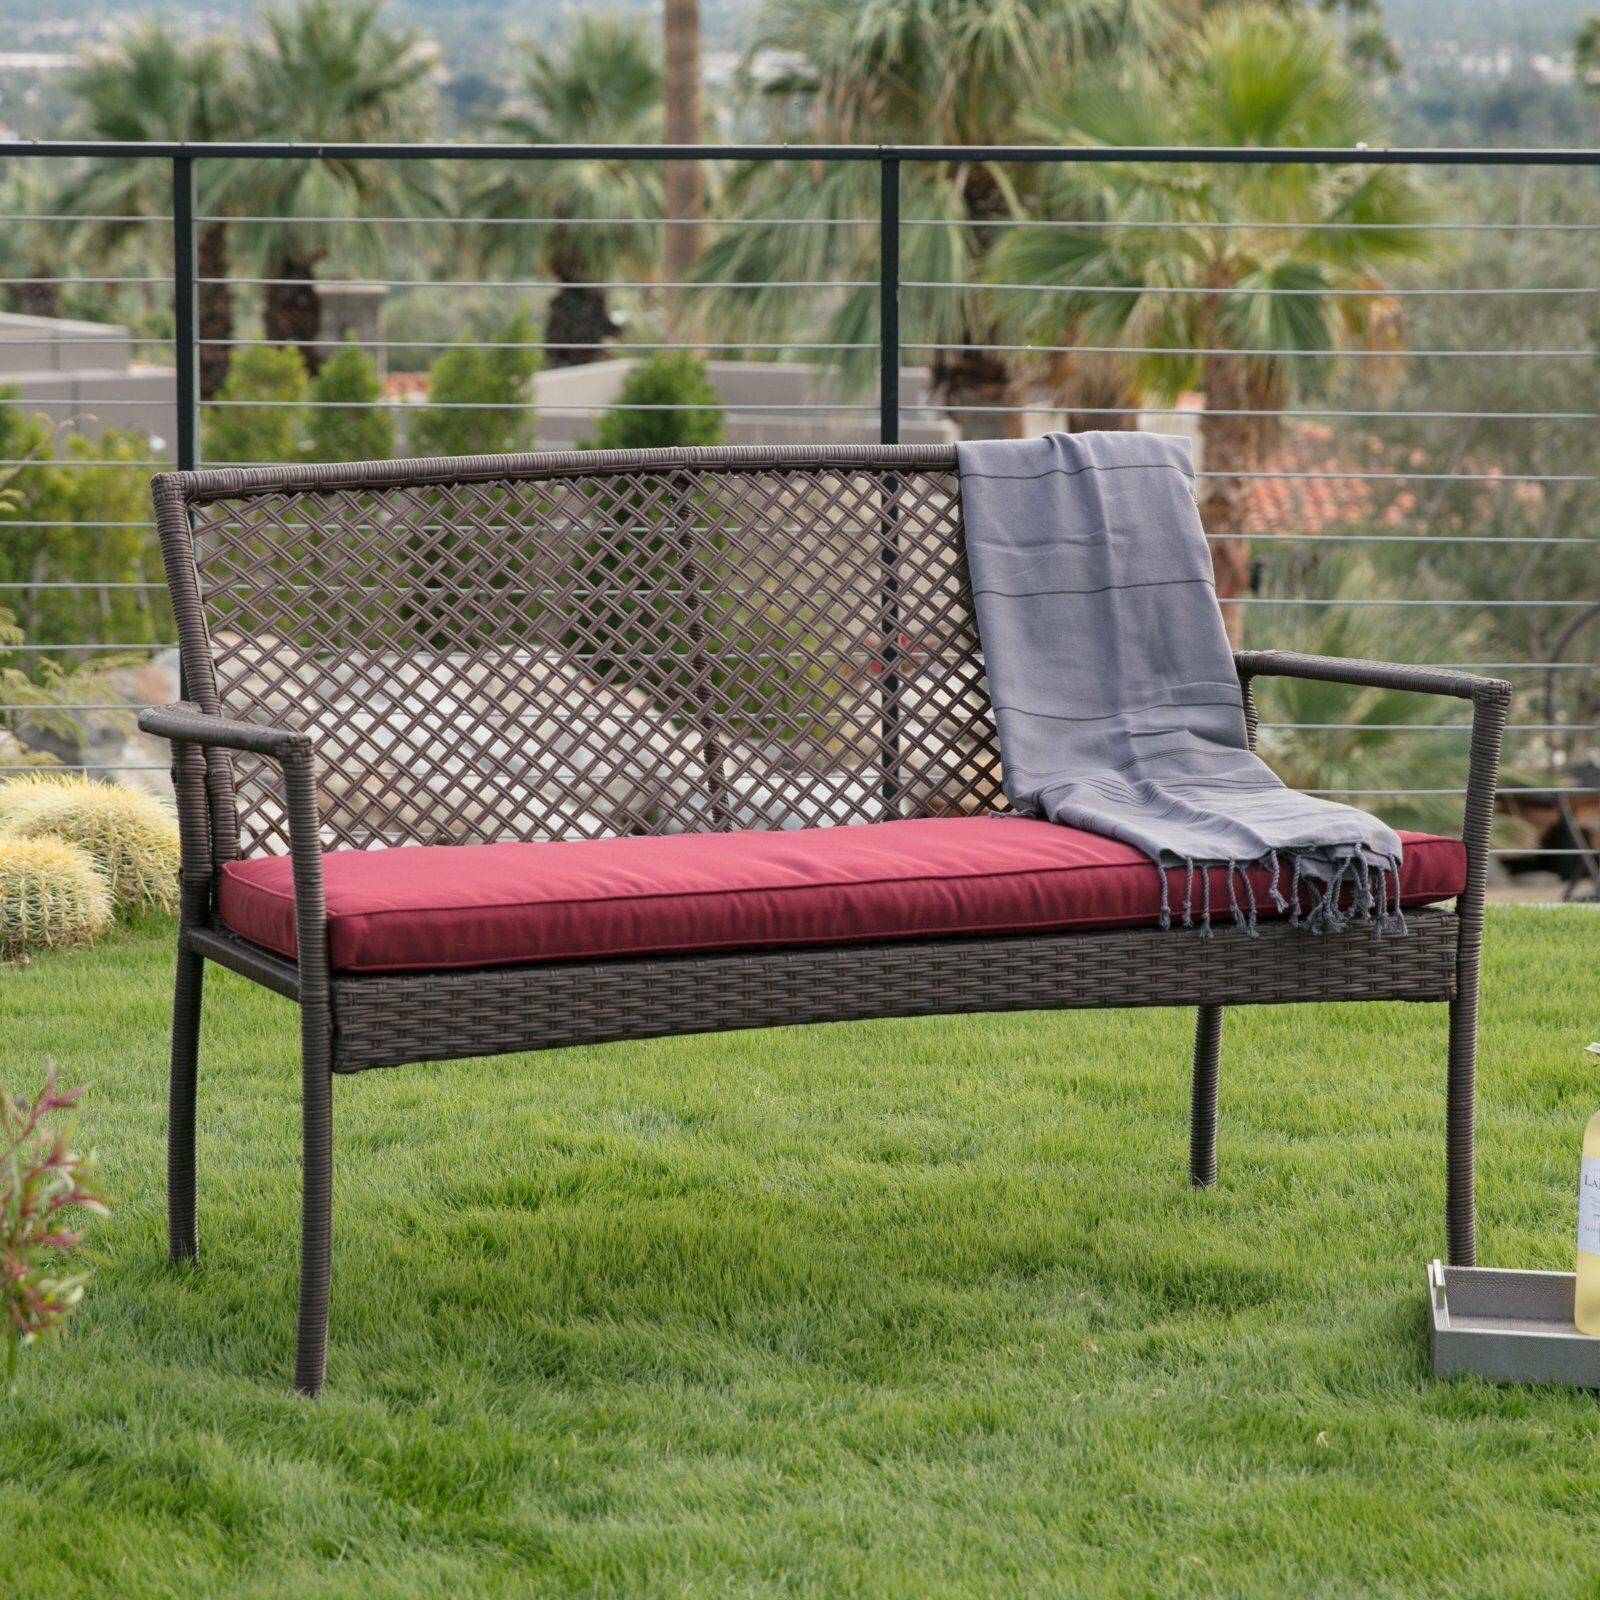 Brown Resin Wicker Outdoor Garden Bench With Burgundy Red Cushion Patio Seating